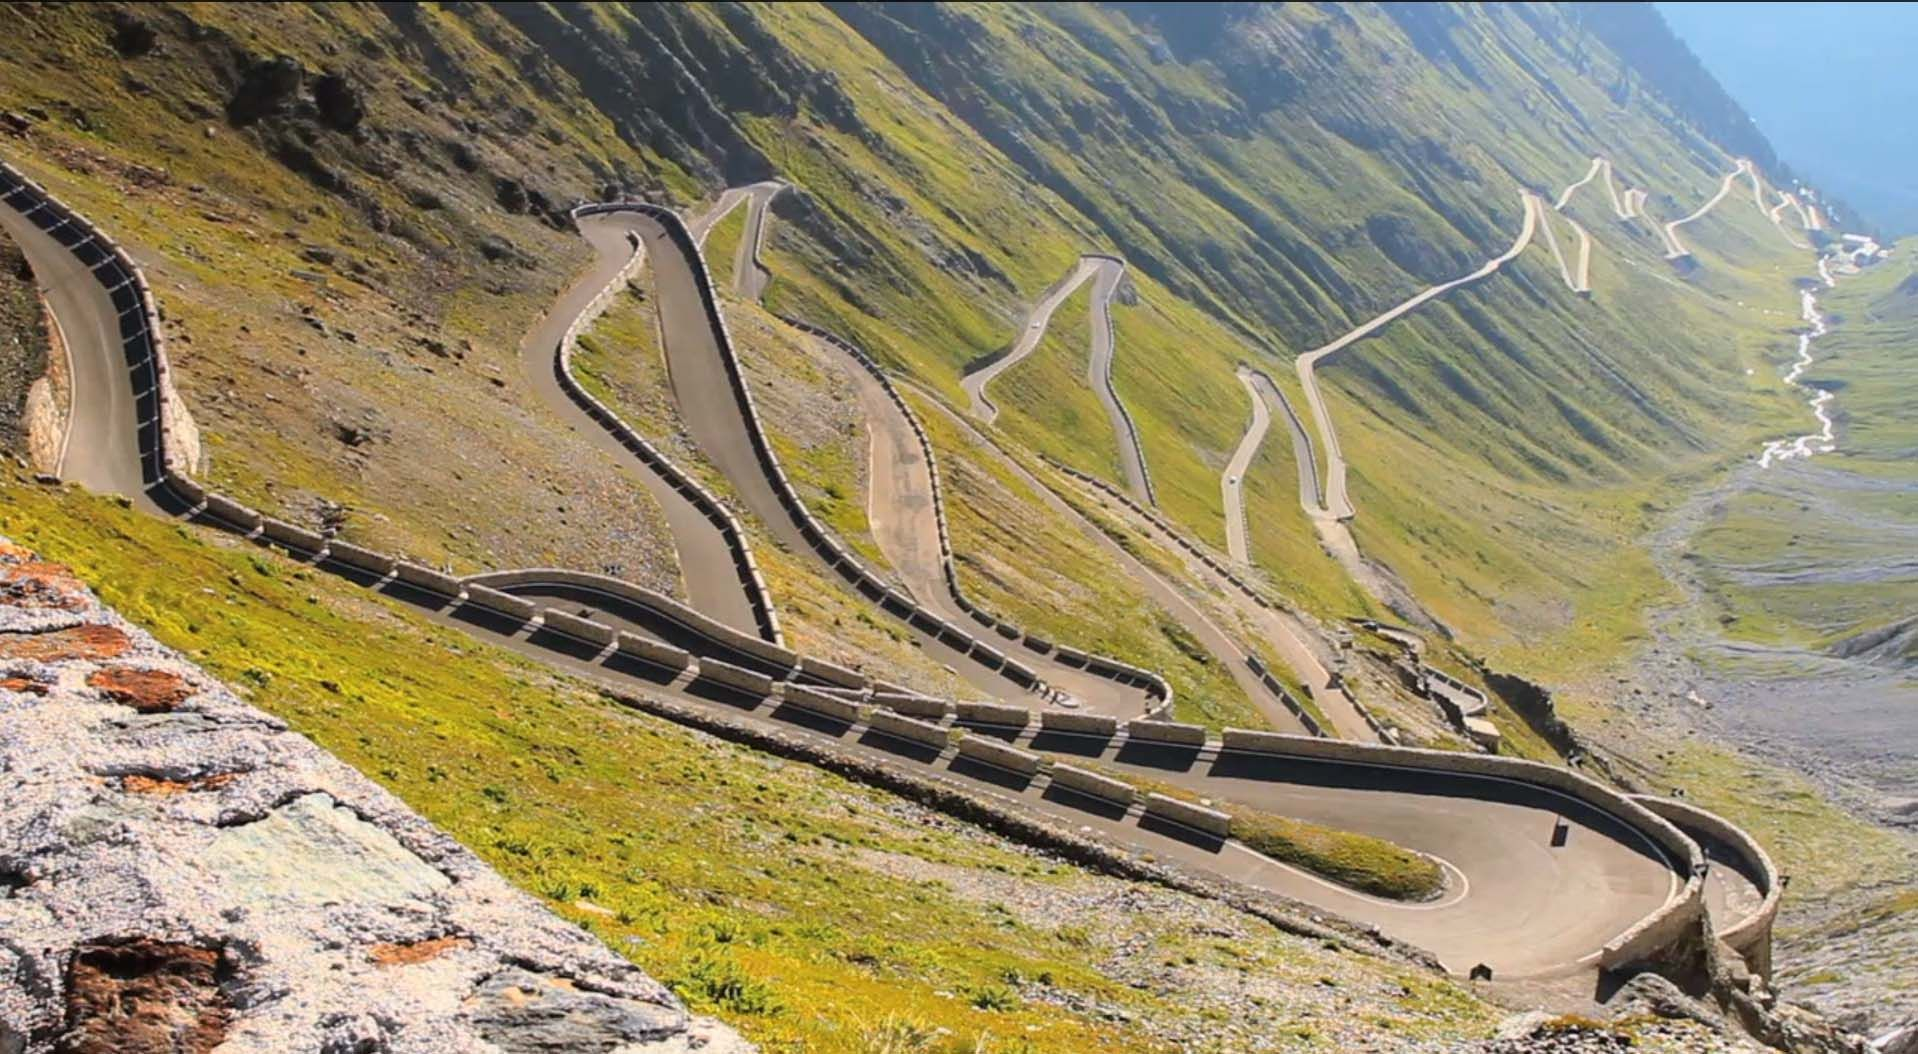 Stelvio Pass one of the greatest drivers road in Europe